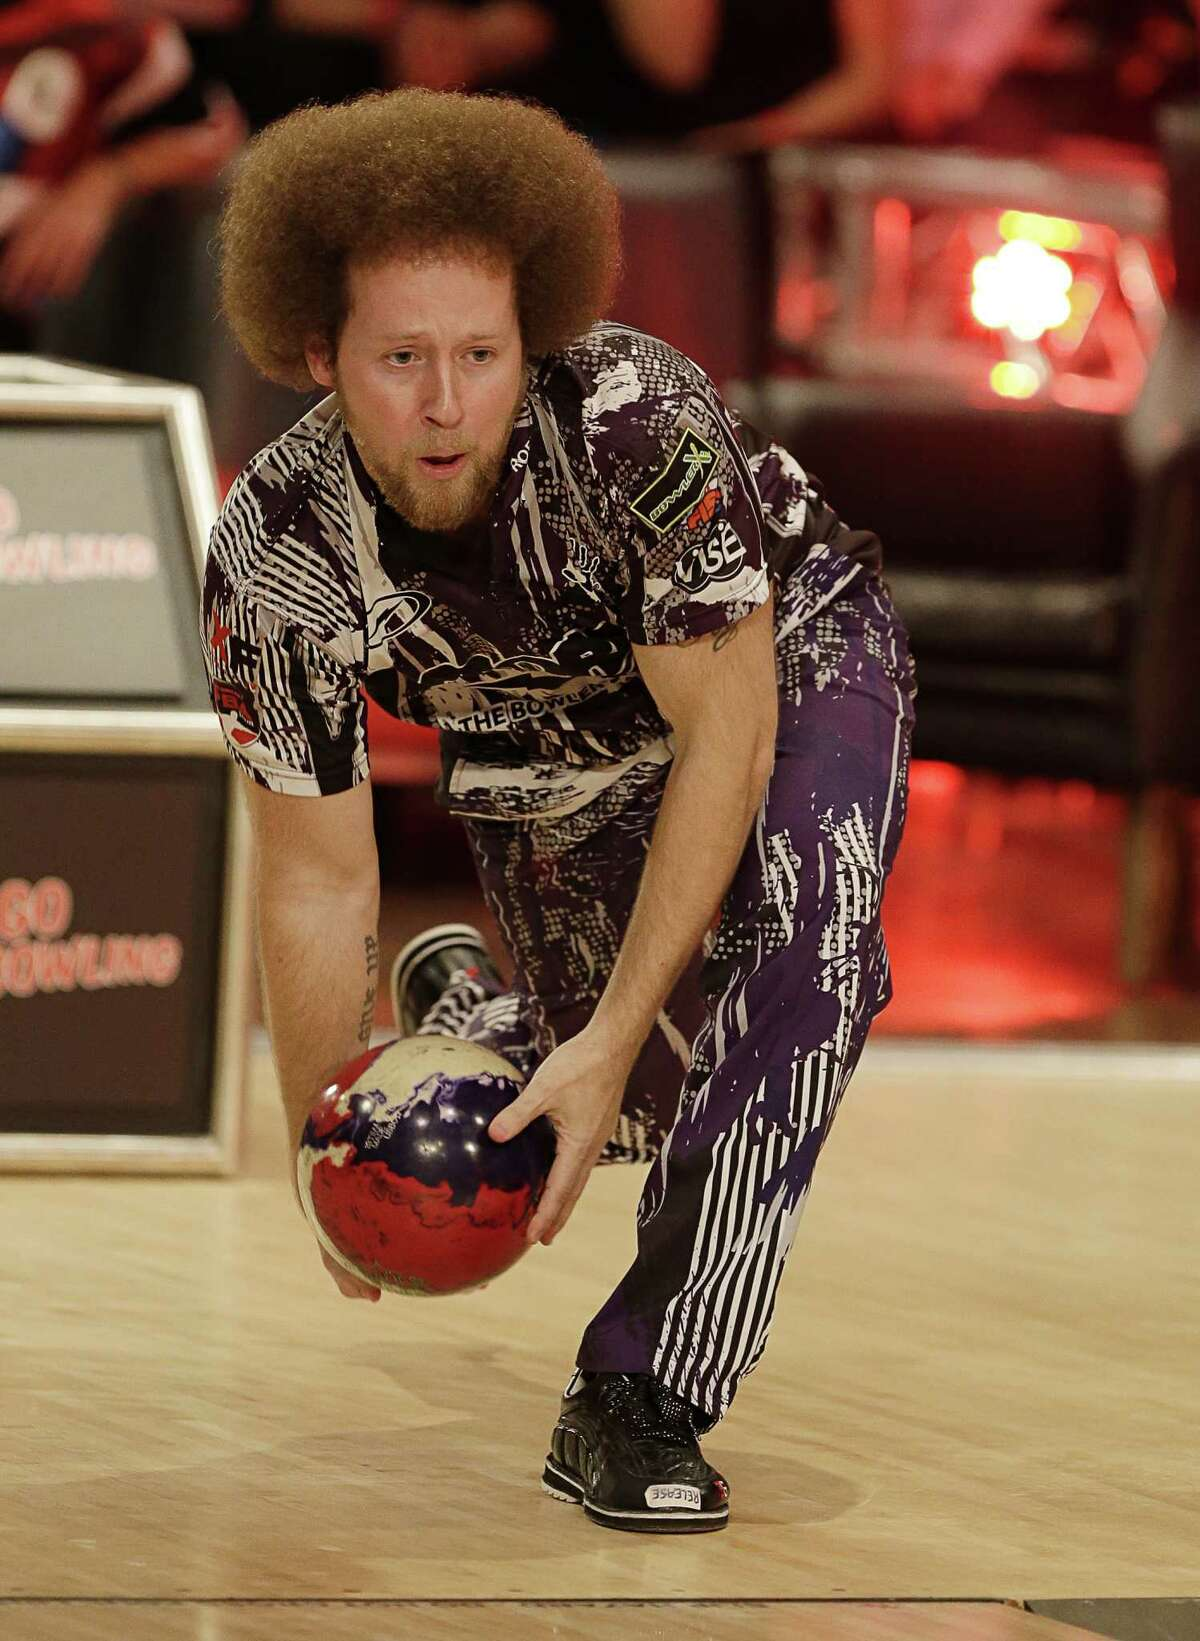 HOUSTON, TEXAS - JANUARY 17: PBA bowler Kyle Troup bowls during the 2019 State Farm Chris Paul PBA Celebrity Invitational on January 17, 2019 in Houston, Texas. (Photo by Bob Levey/Getty Images for PBA)